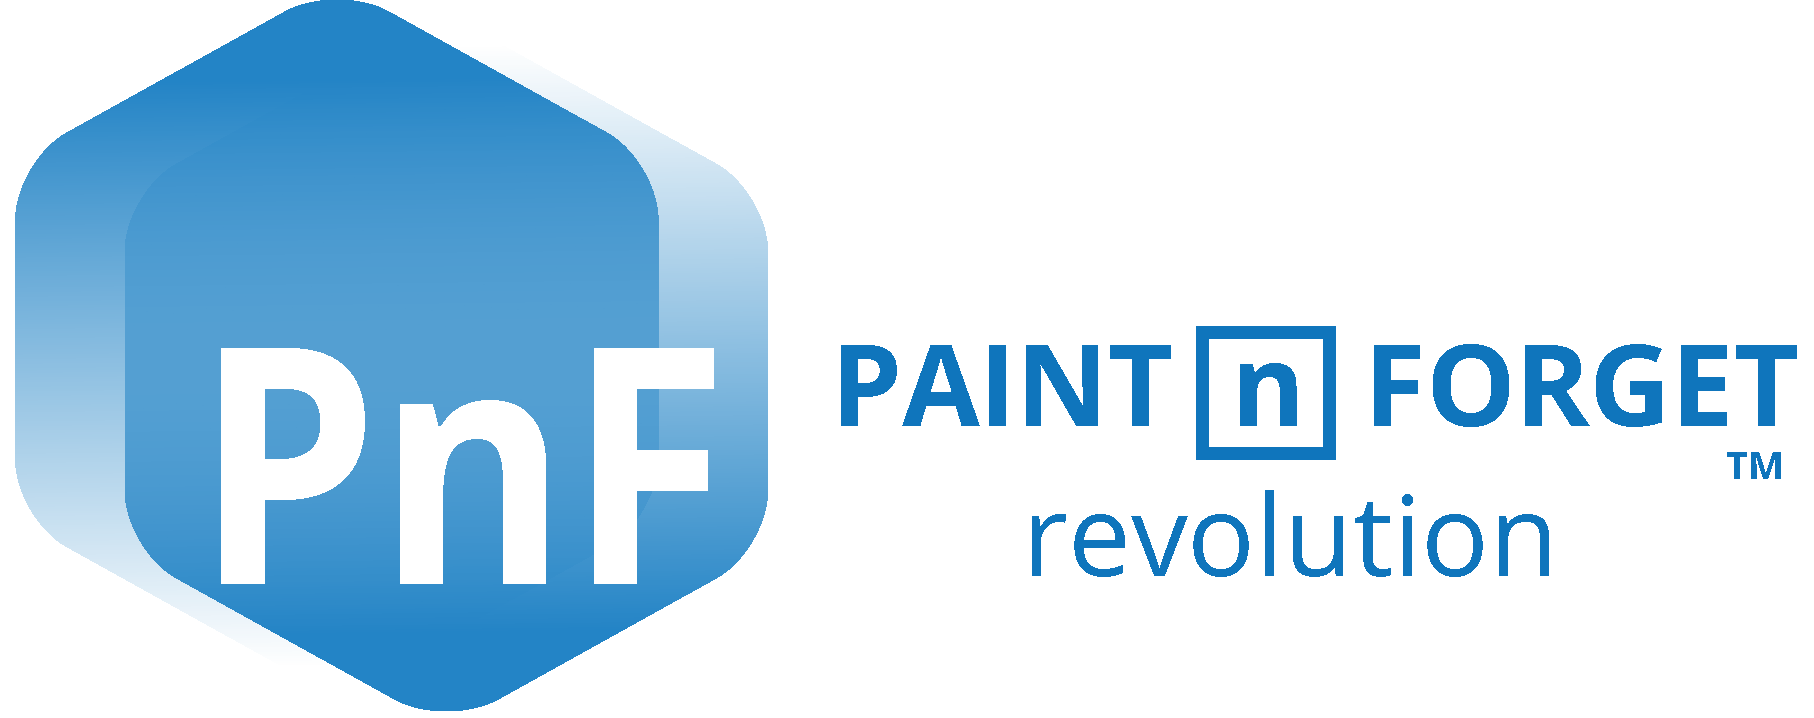 Paint N forget